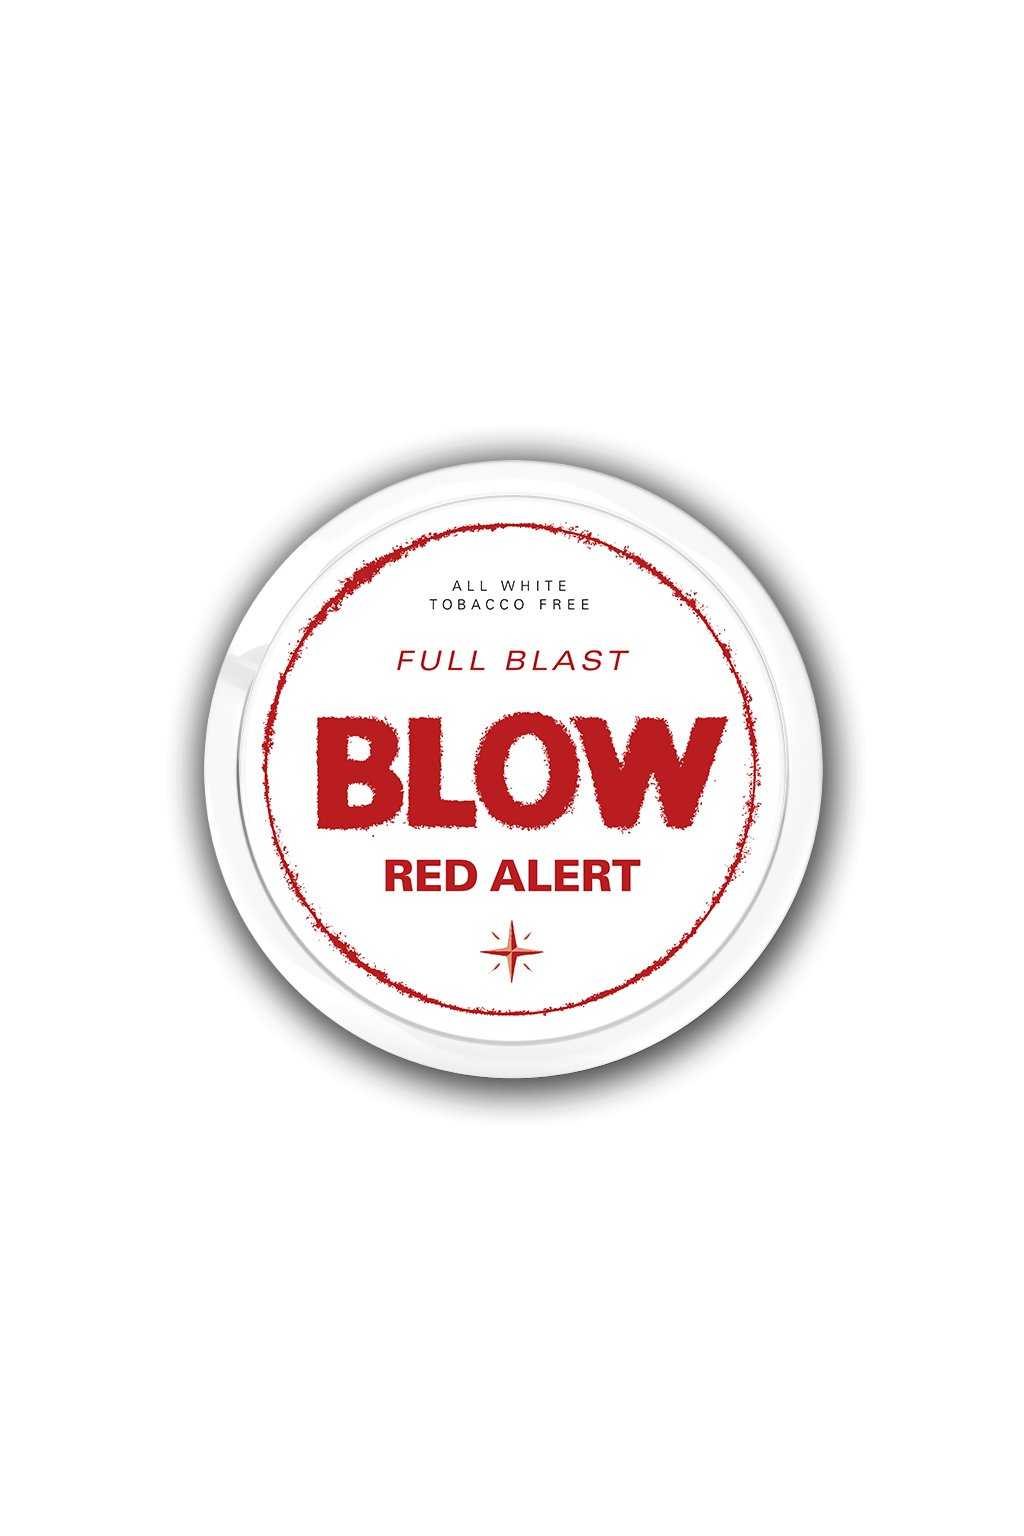 BLOW RED ALERT nikotinove sacky